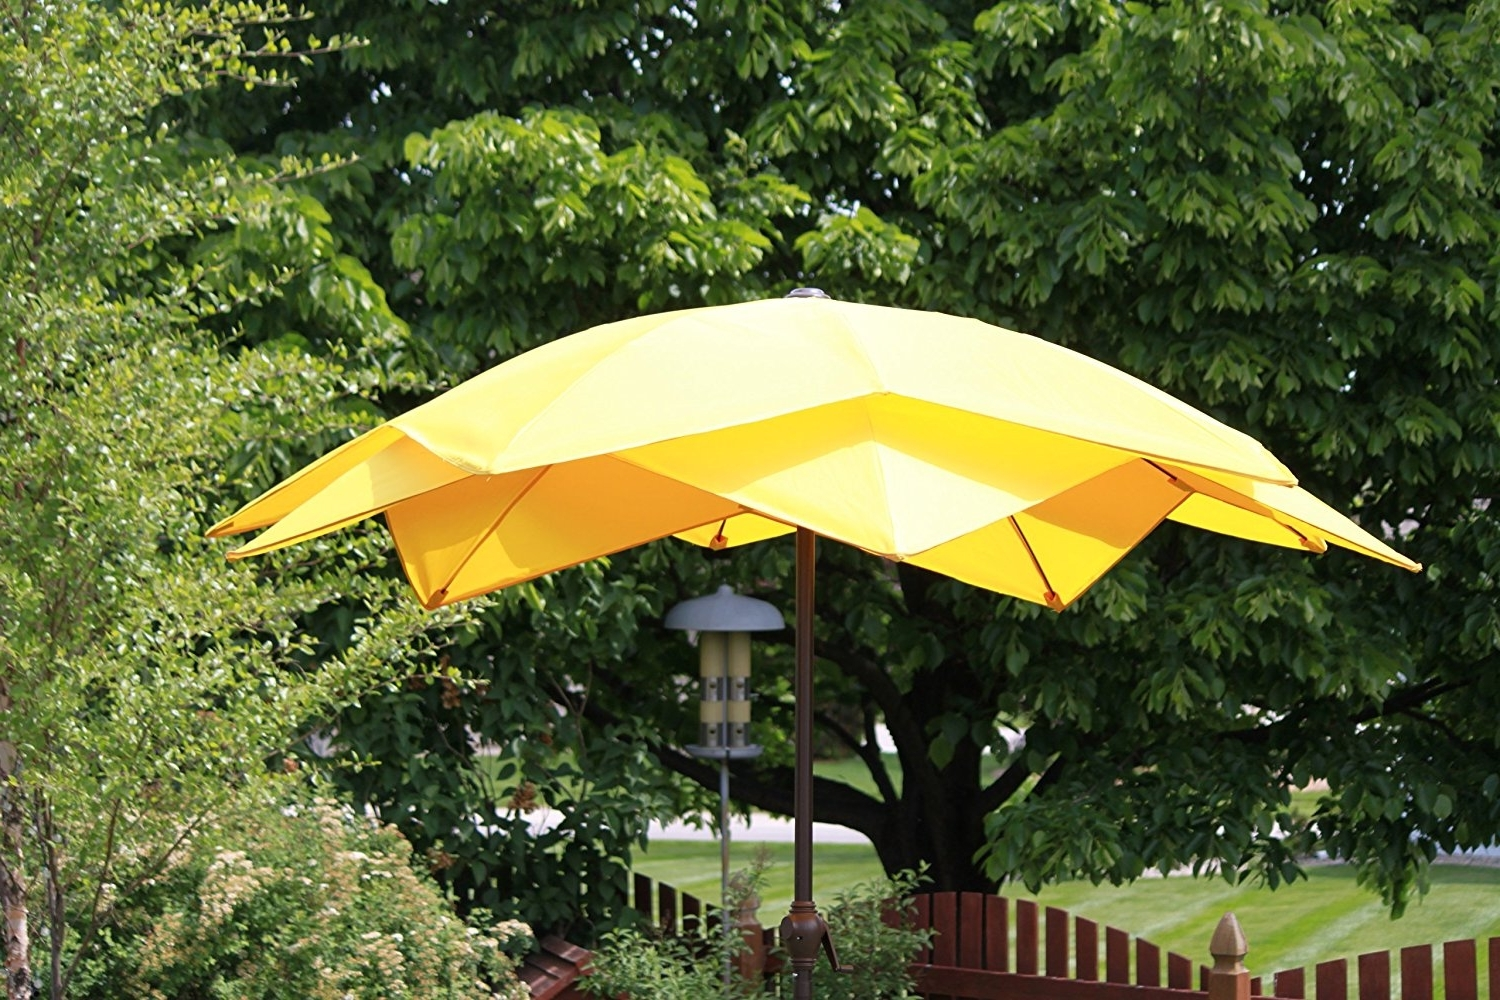 Elegant Wind Resistant Patio Umbrella Uk F36X On Most Luxury Small In Most Up To Date Wind Resistant Patio Umbrellas (View 6 of 20)